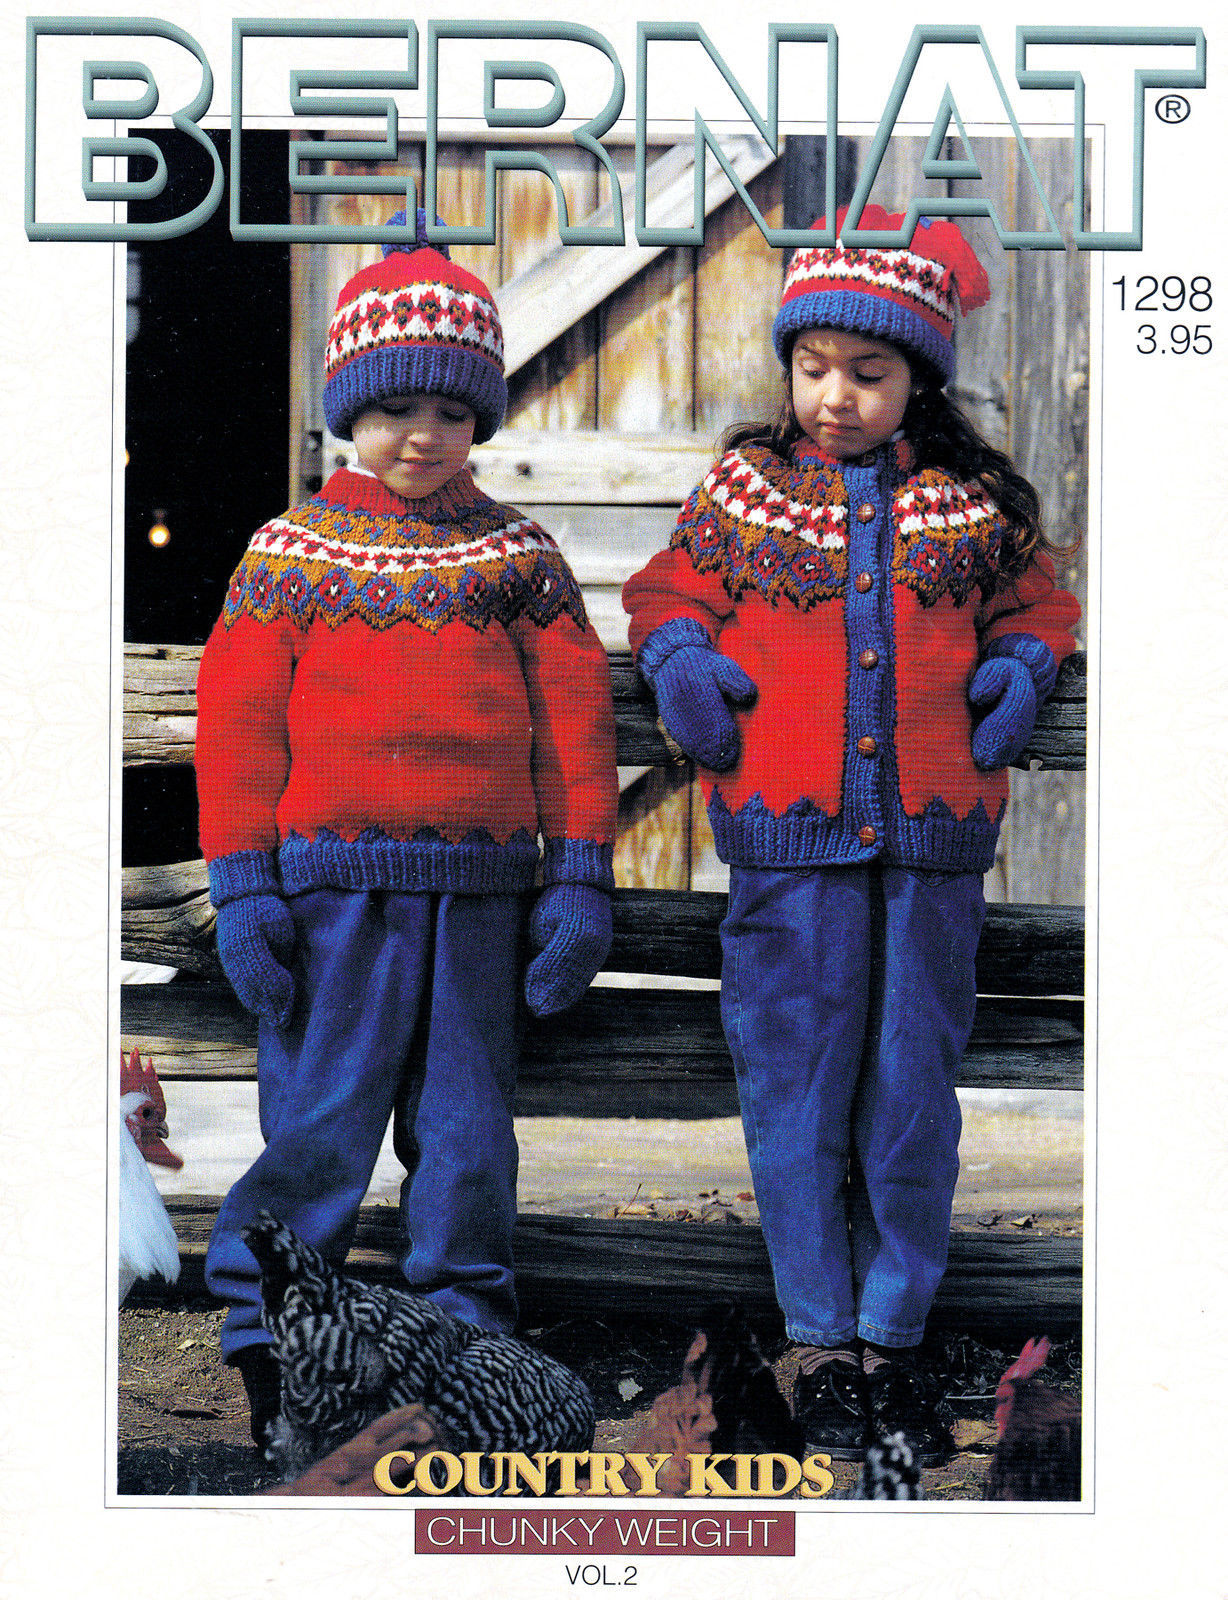 Primary image for KNIT COUNTRY KIDS PATTERN CHUNKY WEIGHT BERNAT #1298 HATS CARDIGANS SWEATERS